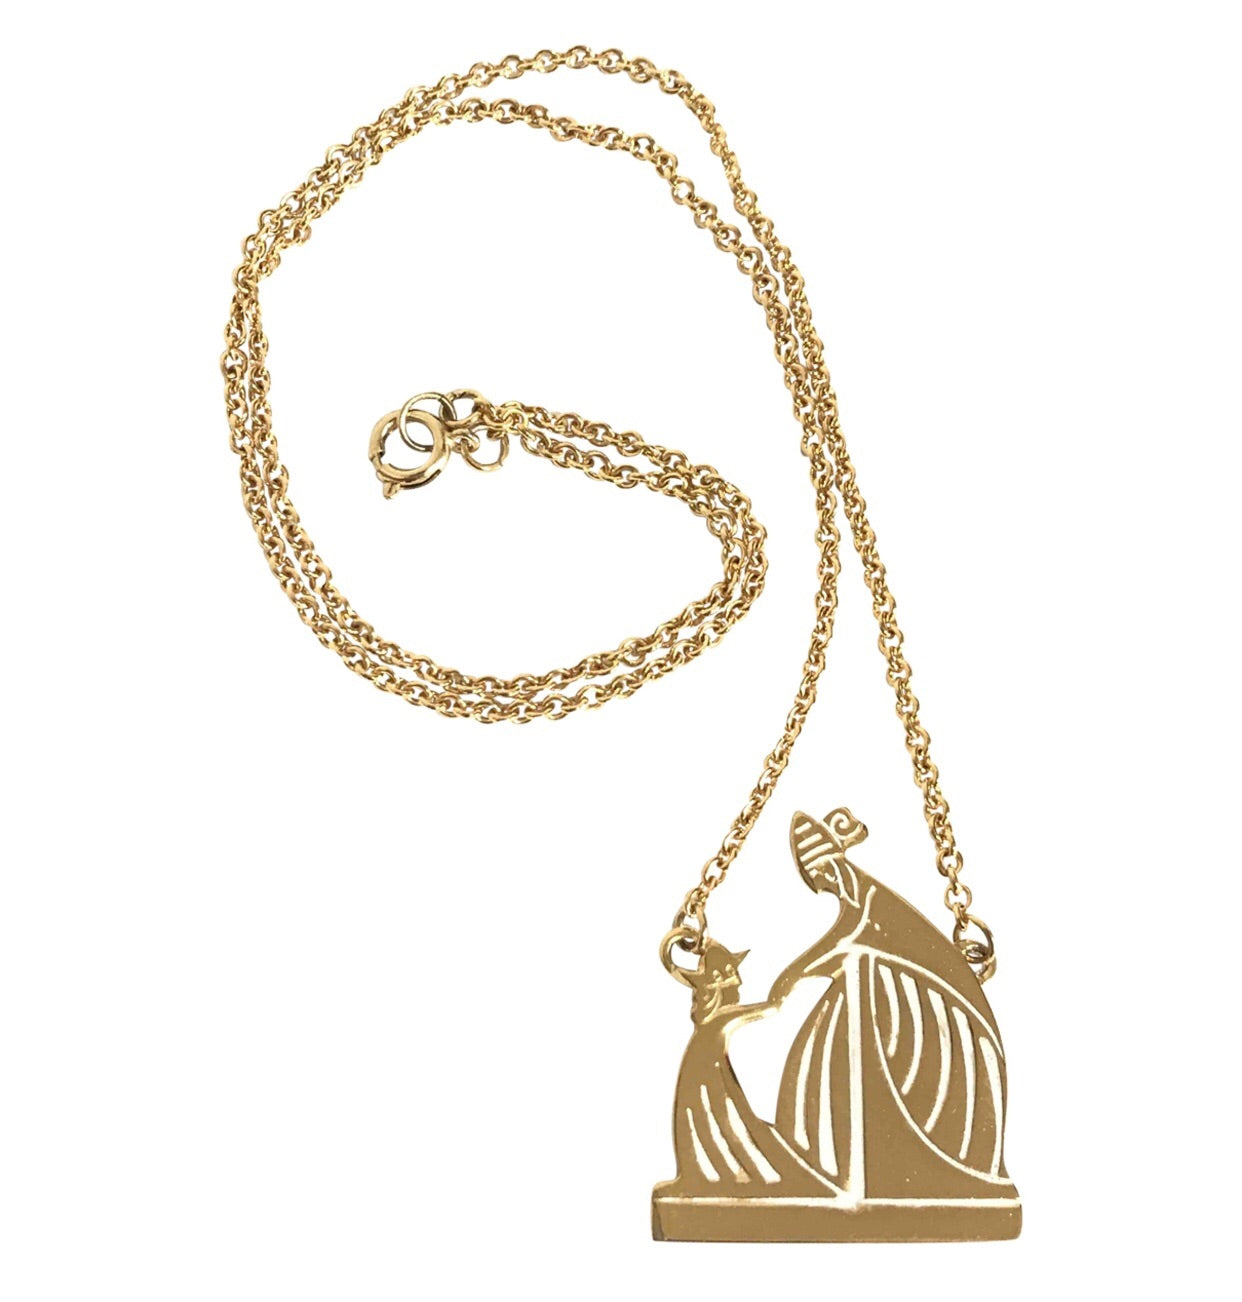 Vintage LANVIN golden skinny chain necklace with logo charm pendant top. Perfect jewelry gift.